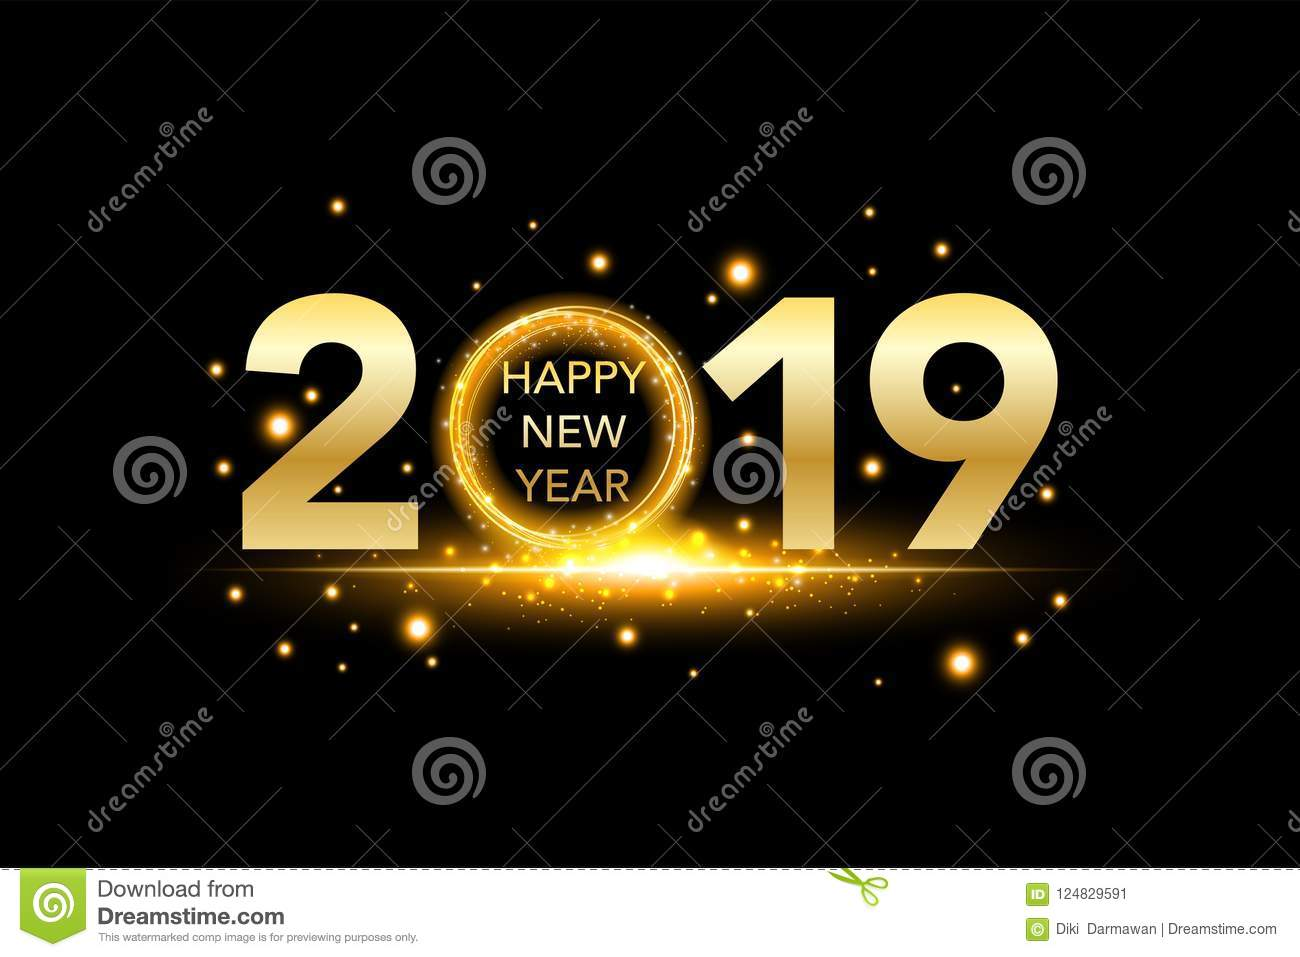 happy new year 2019 background with gold glitter confetti splatter festive premium design template for greeting card calendar banner glowing lights